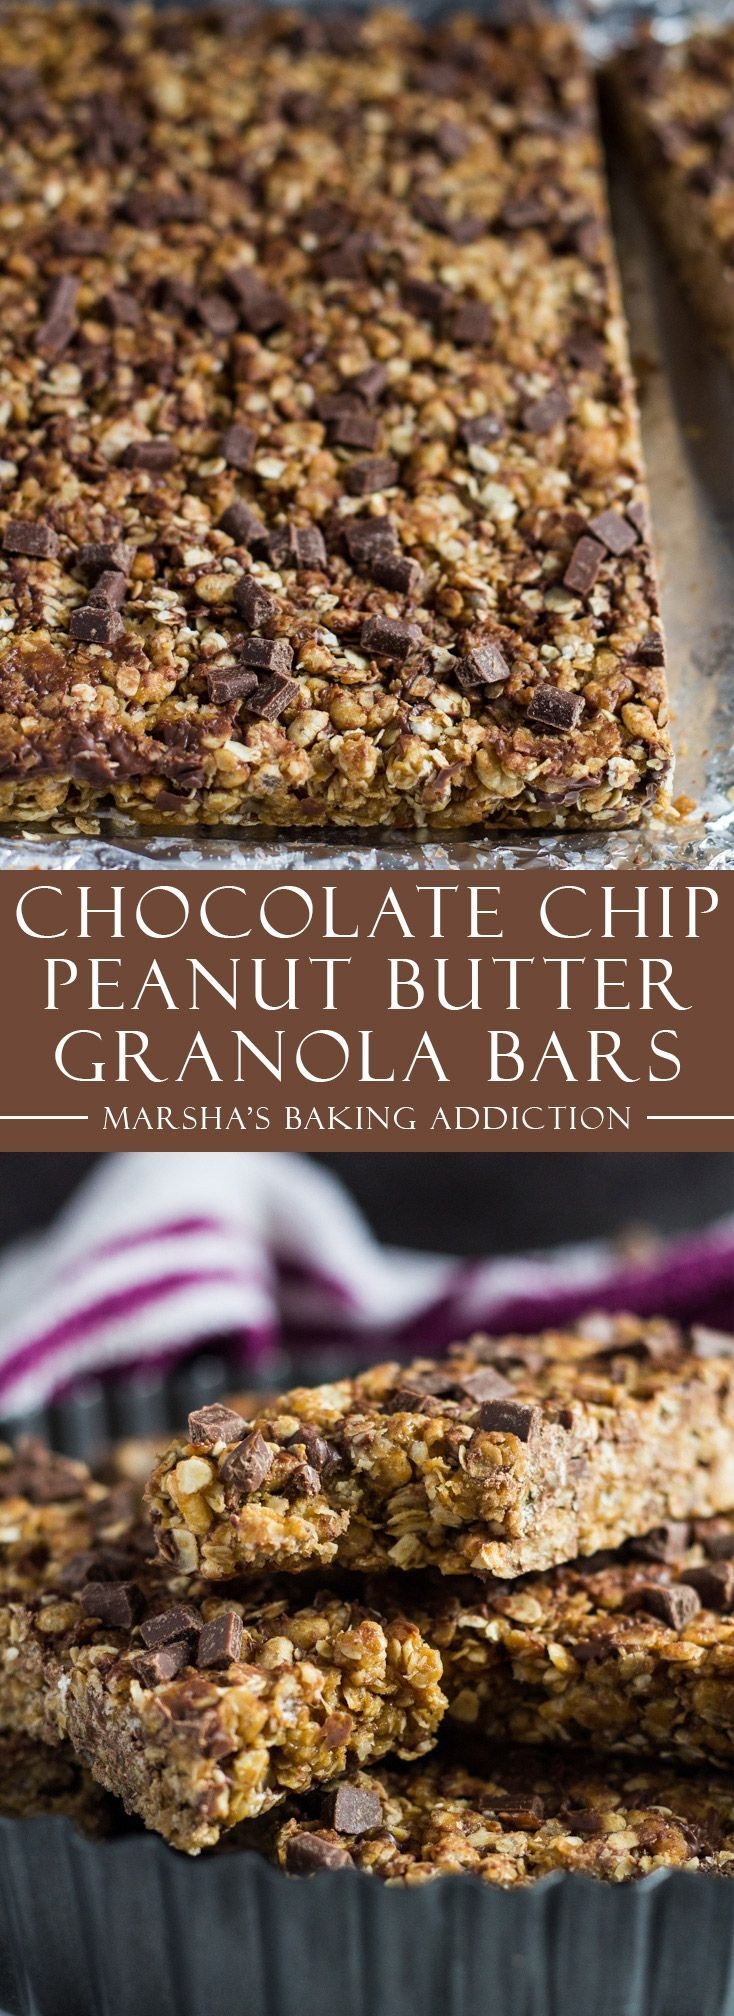 No-Bake Chocolate Chip Peanut Butter Granola Bars | marshasbakingaddi ...